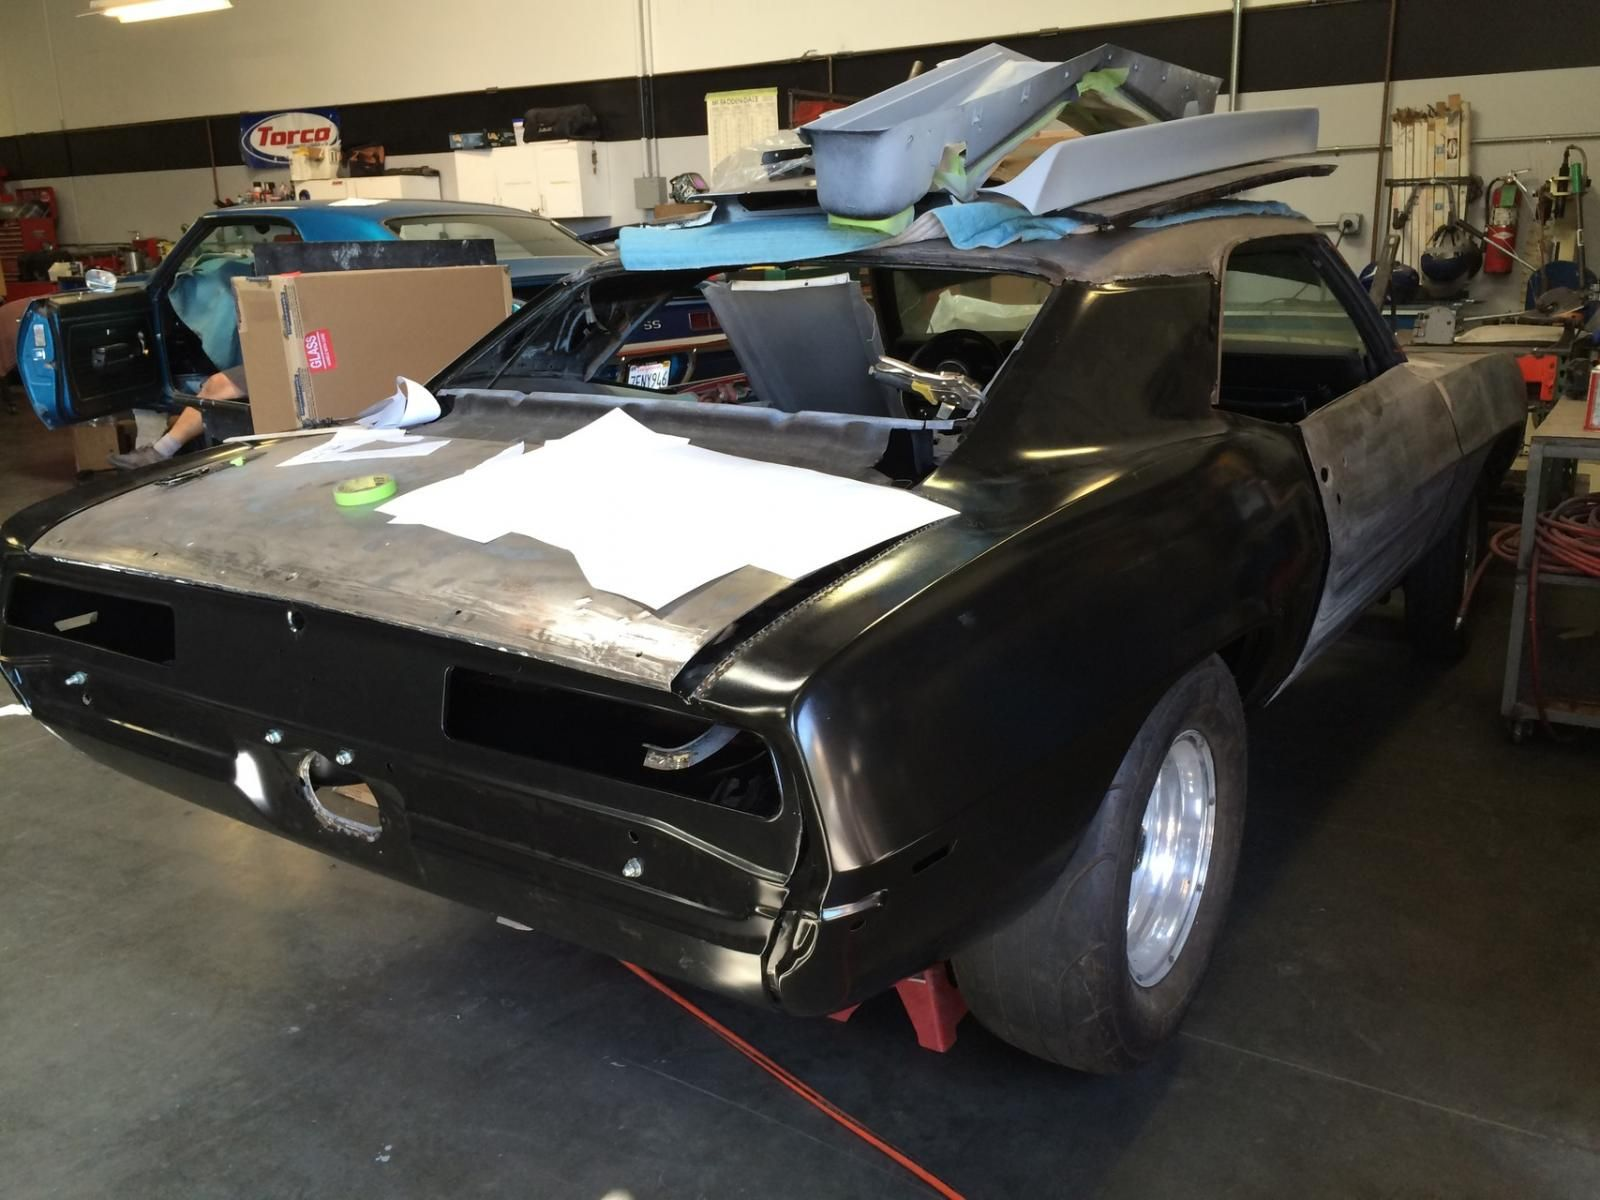 March 30, 2015, new quarter panels and rear body panel being